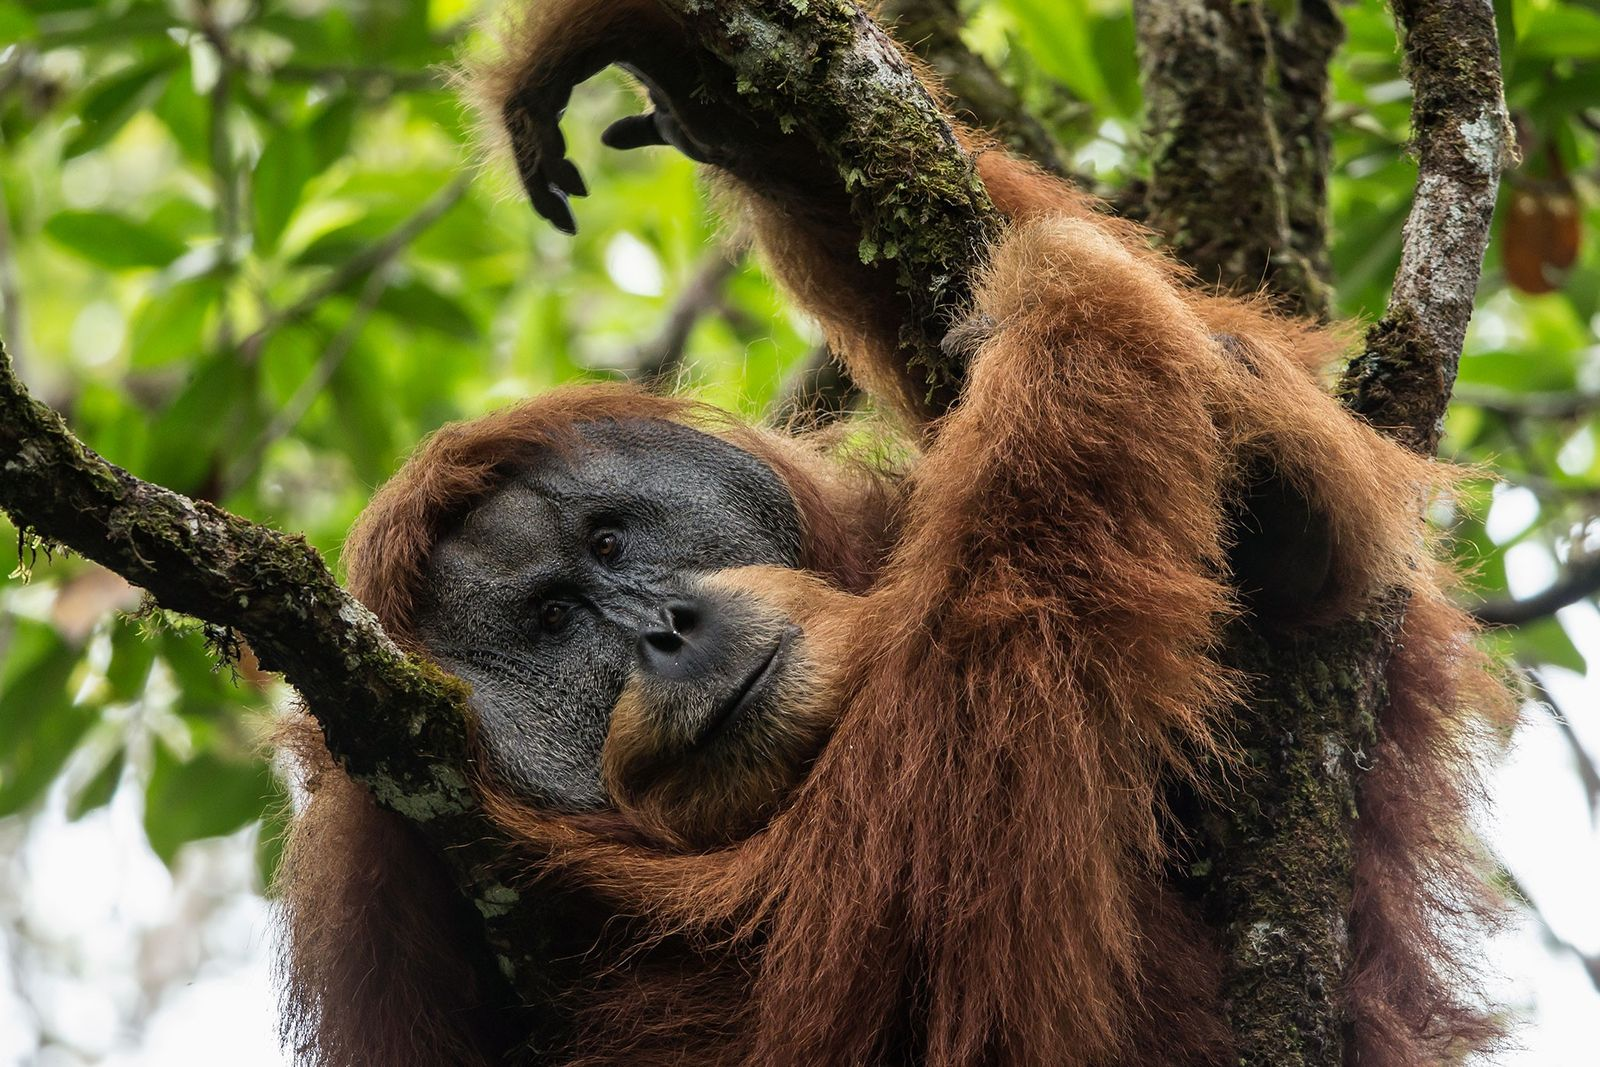 Batang Toru apes are more closely related to their counterparts from Borneo than to other orangutans ...